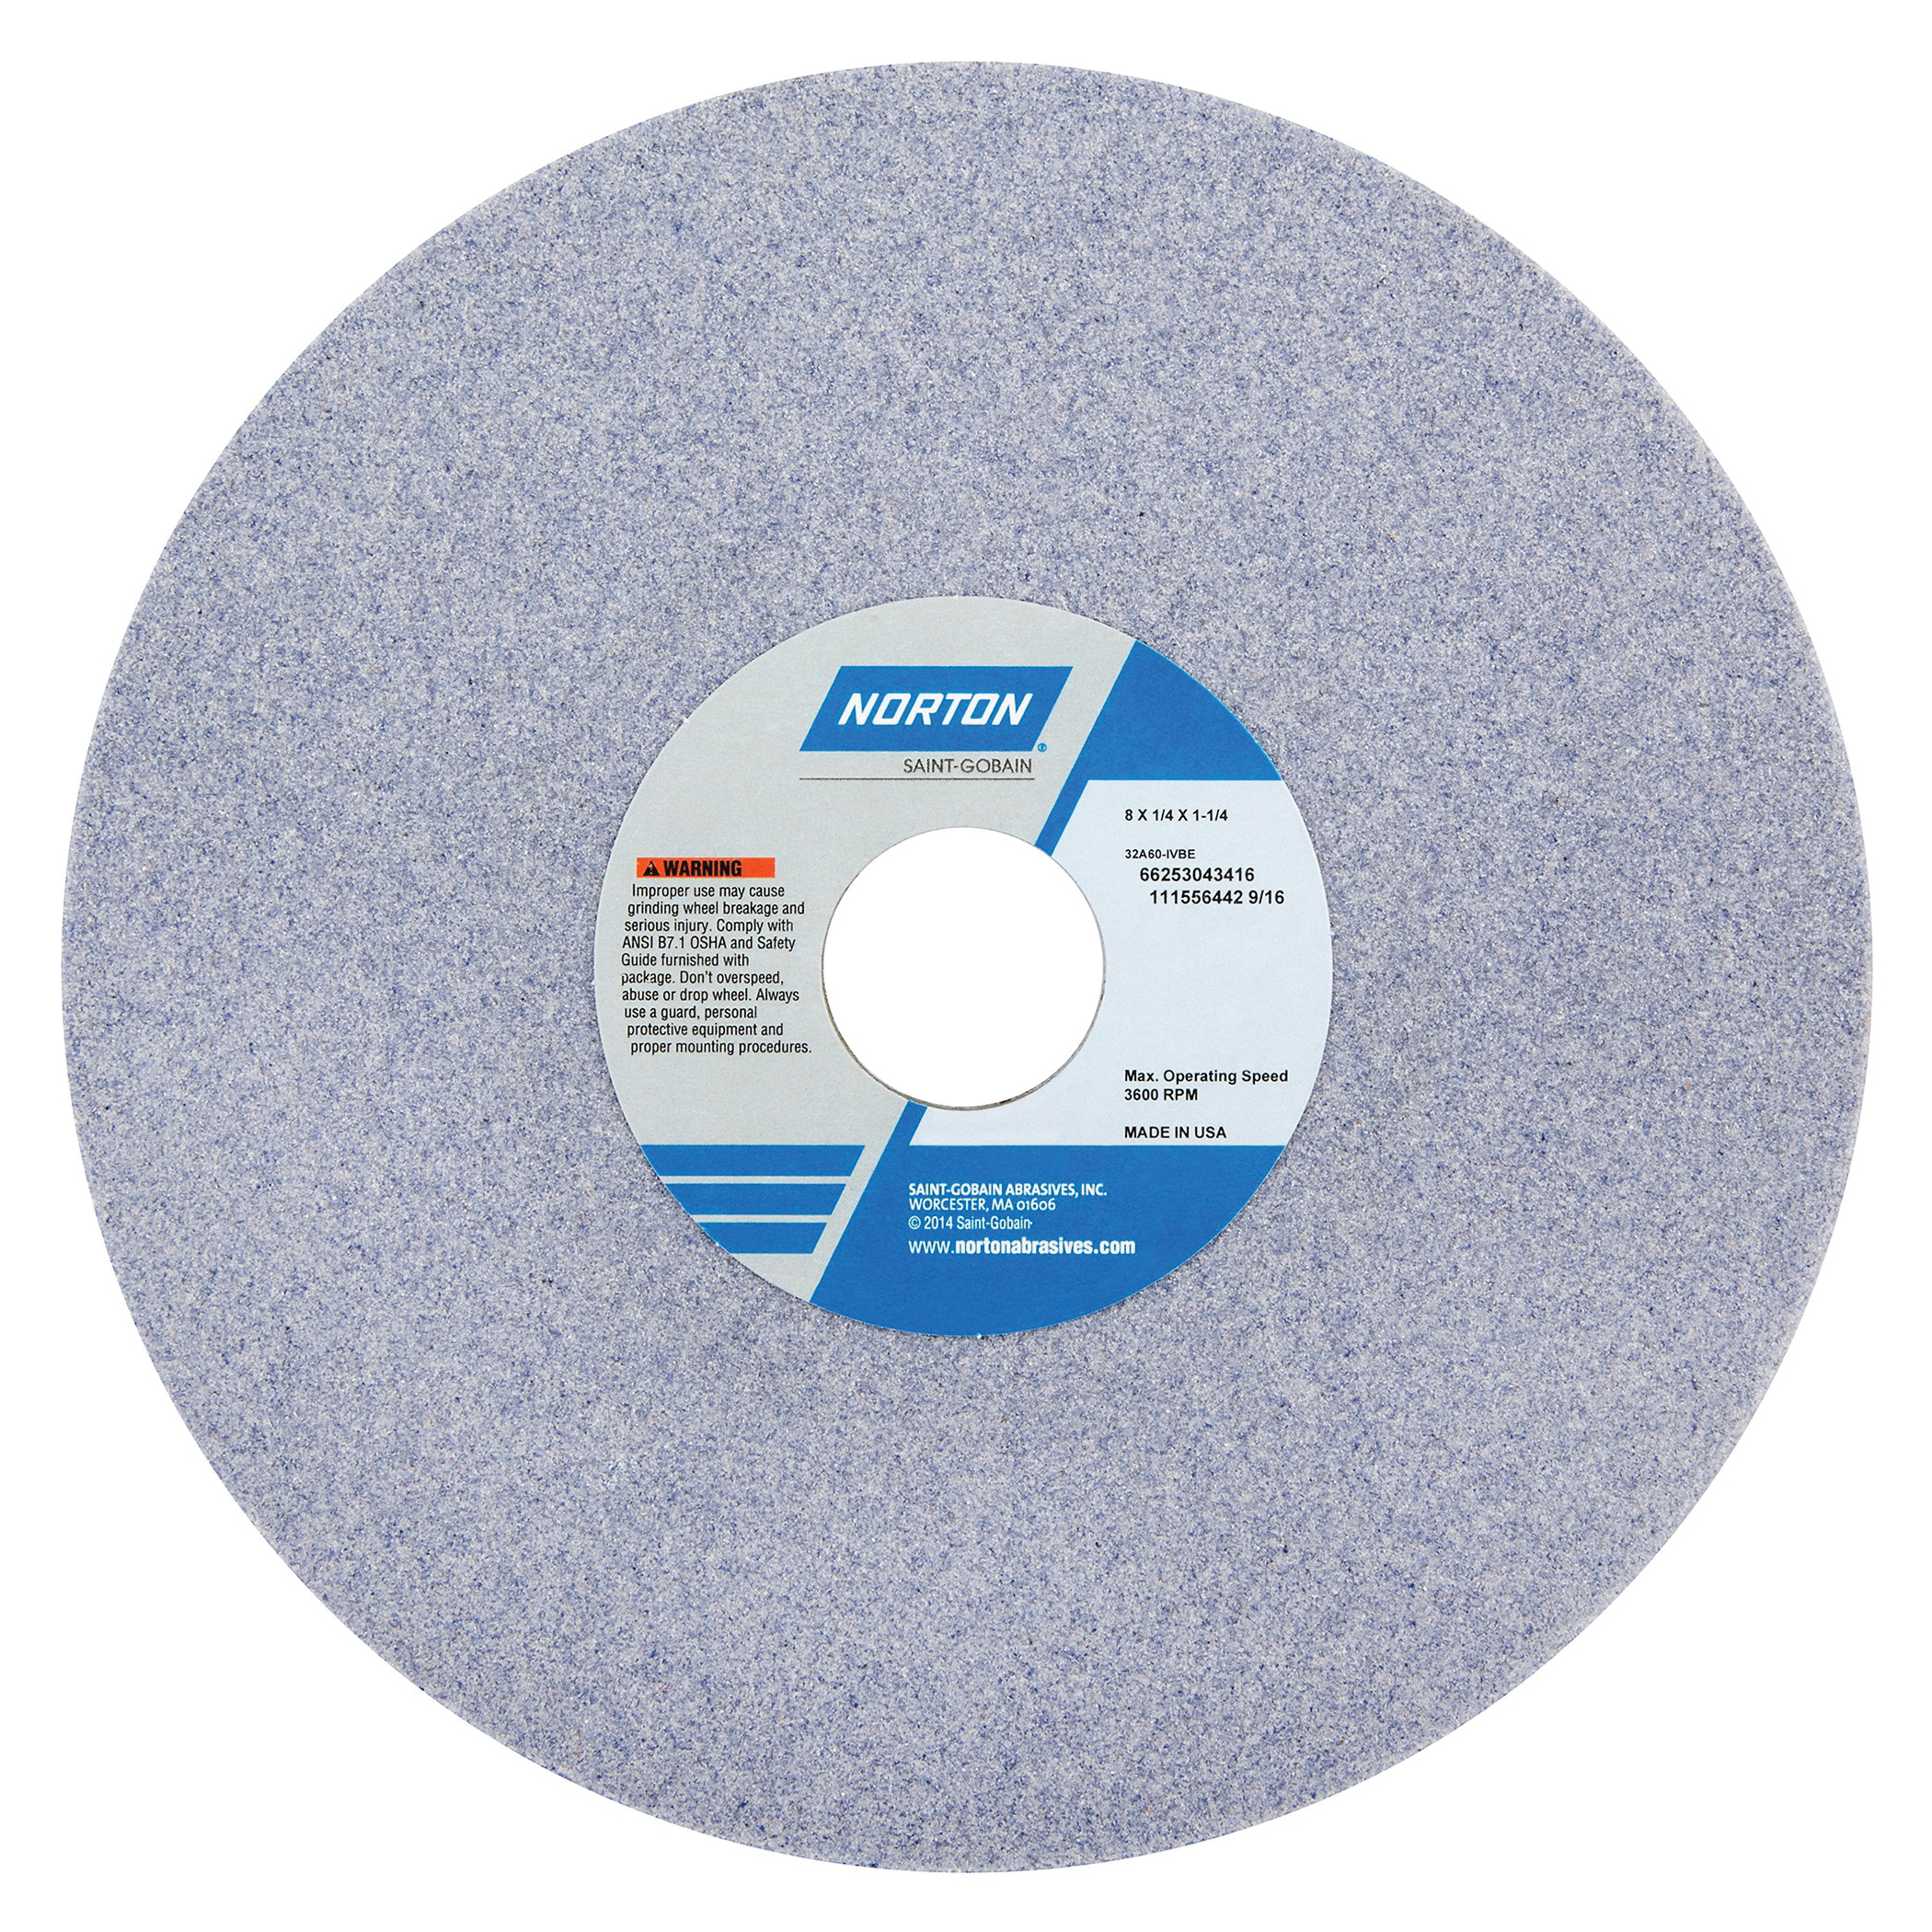 Norton® 66253043426 32A Straight Toolroom Wheel, 8 in Dia x 1/4 in THK, 1-1/4 in Center Hole, 100 Grit, Aluminum Oxide Abrasive